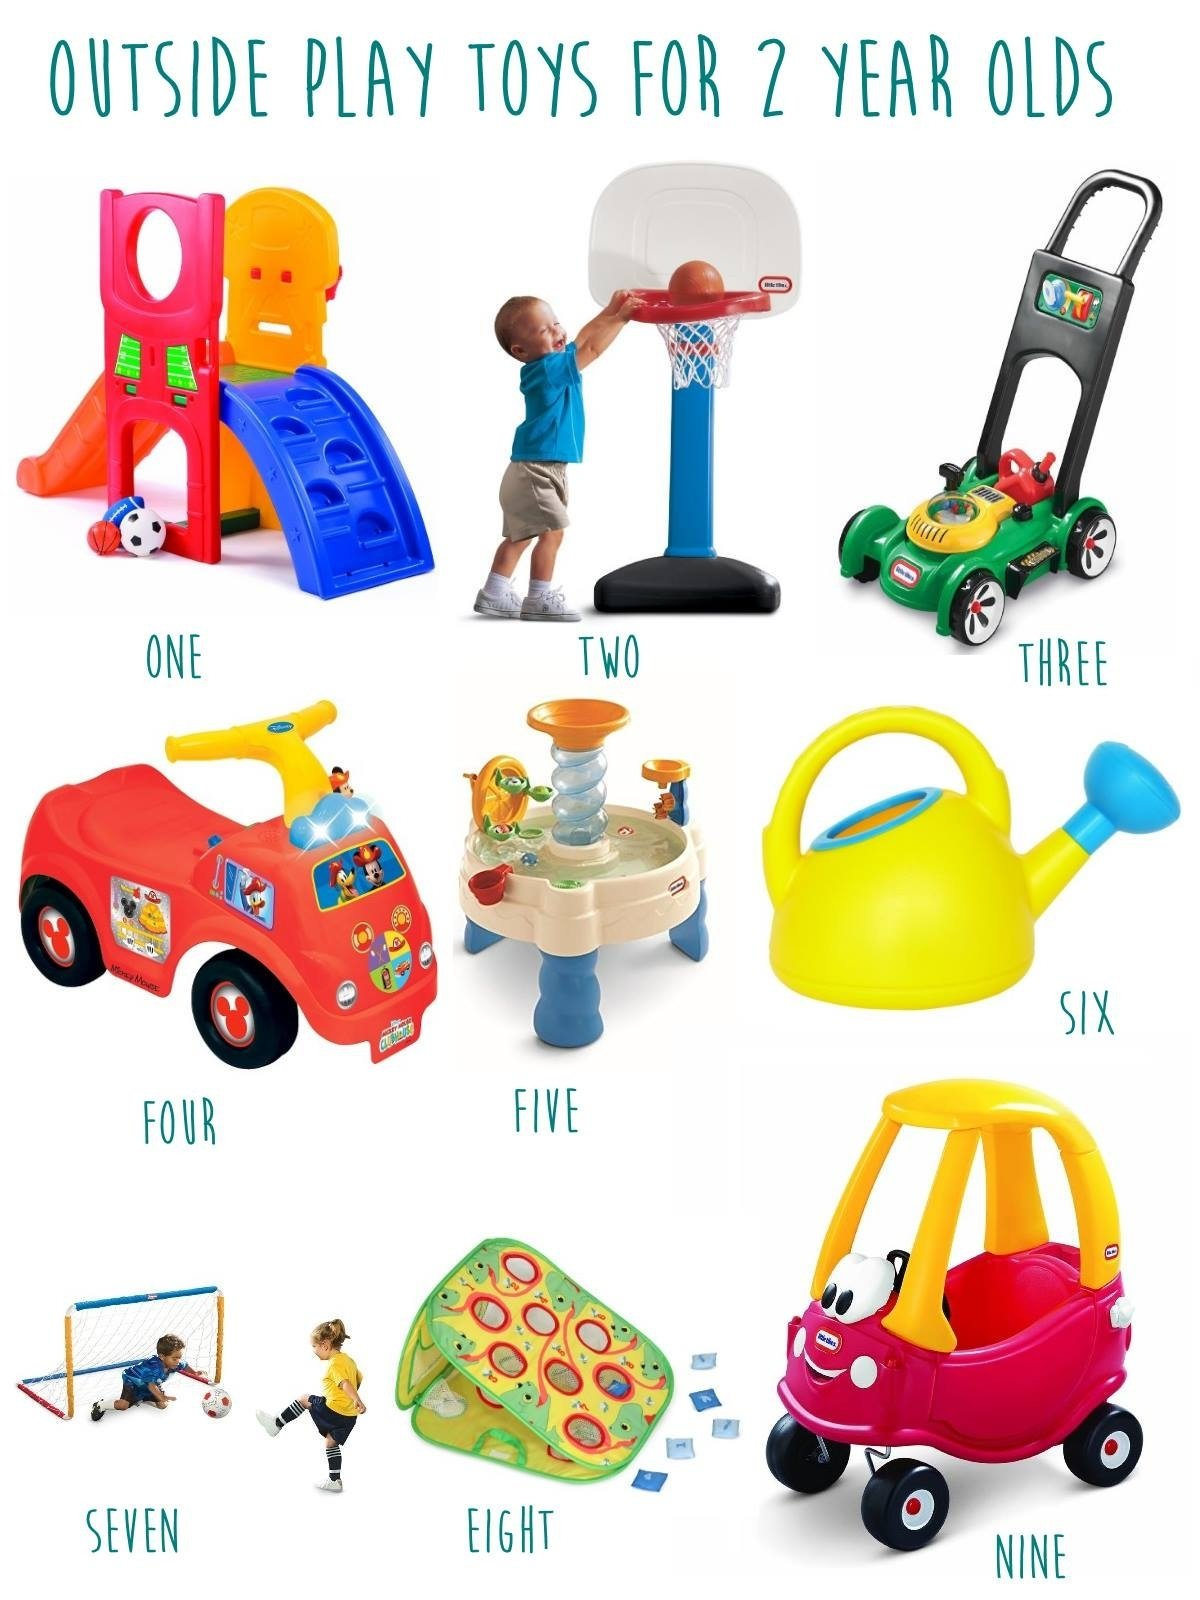 10 Wonderful Two Year Old Gift Ideas best gifts for 2 year old boy mary martha mama 5 2020